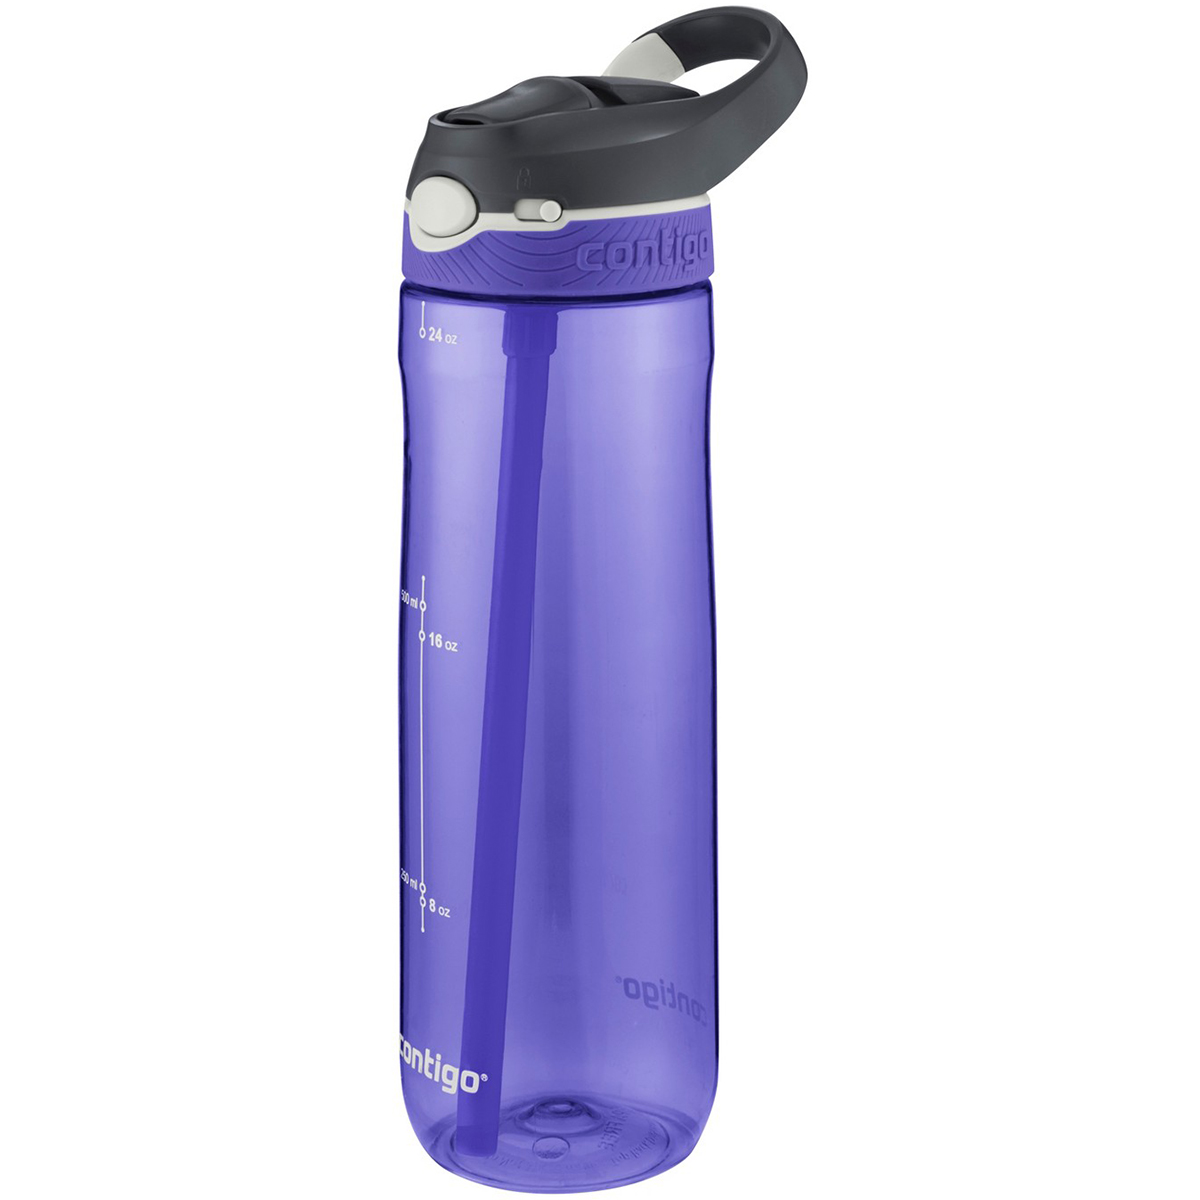 Contigo-24-oz-Ashland-Autospout-Water-Bottle miniatura 7